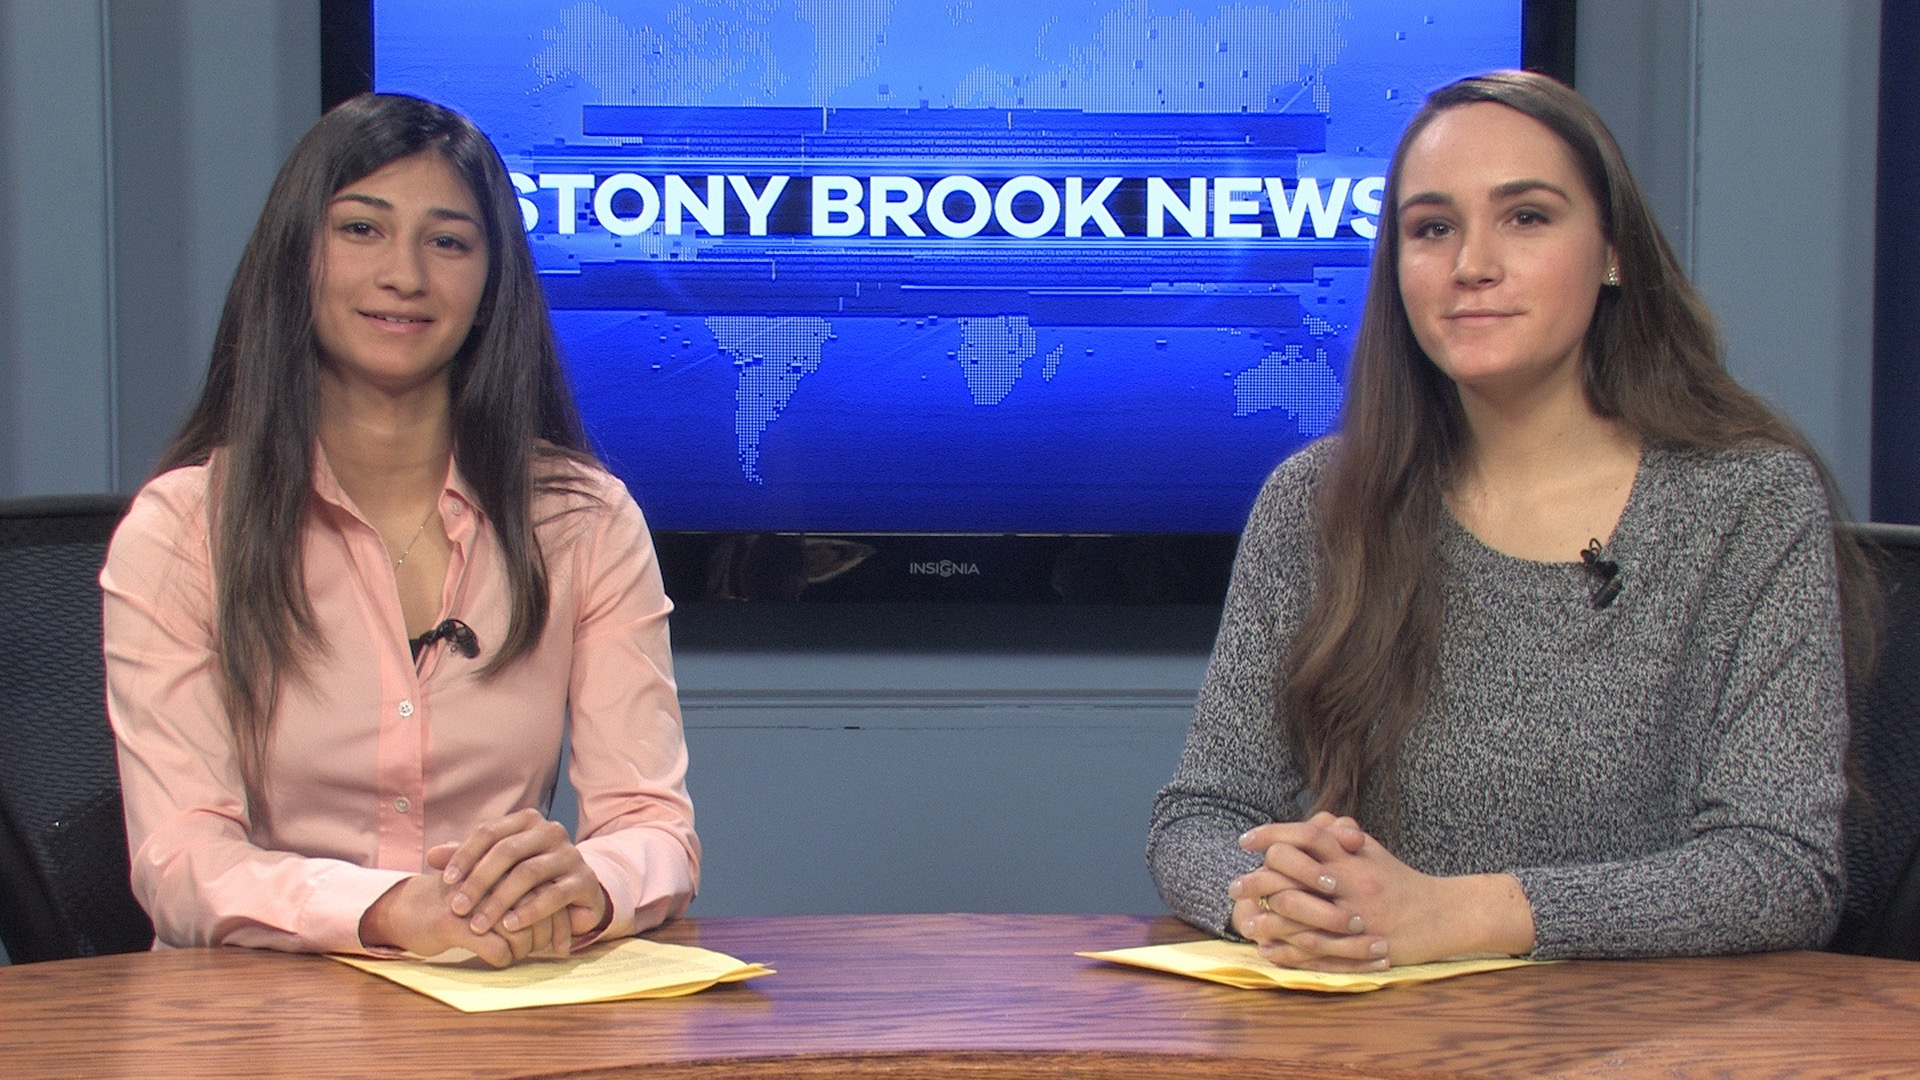 Stony Brook News – February 5, 2018